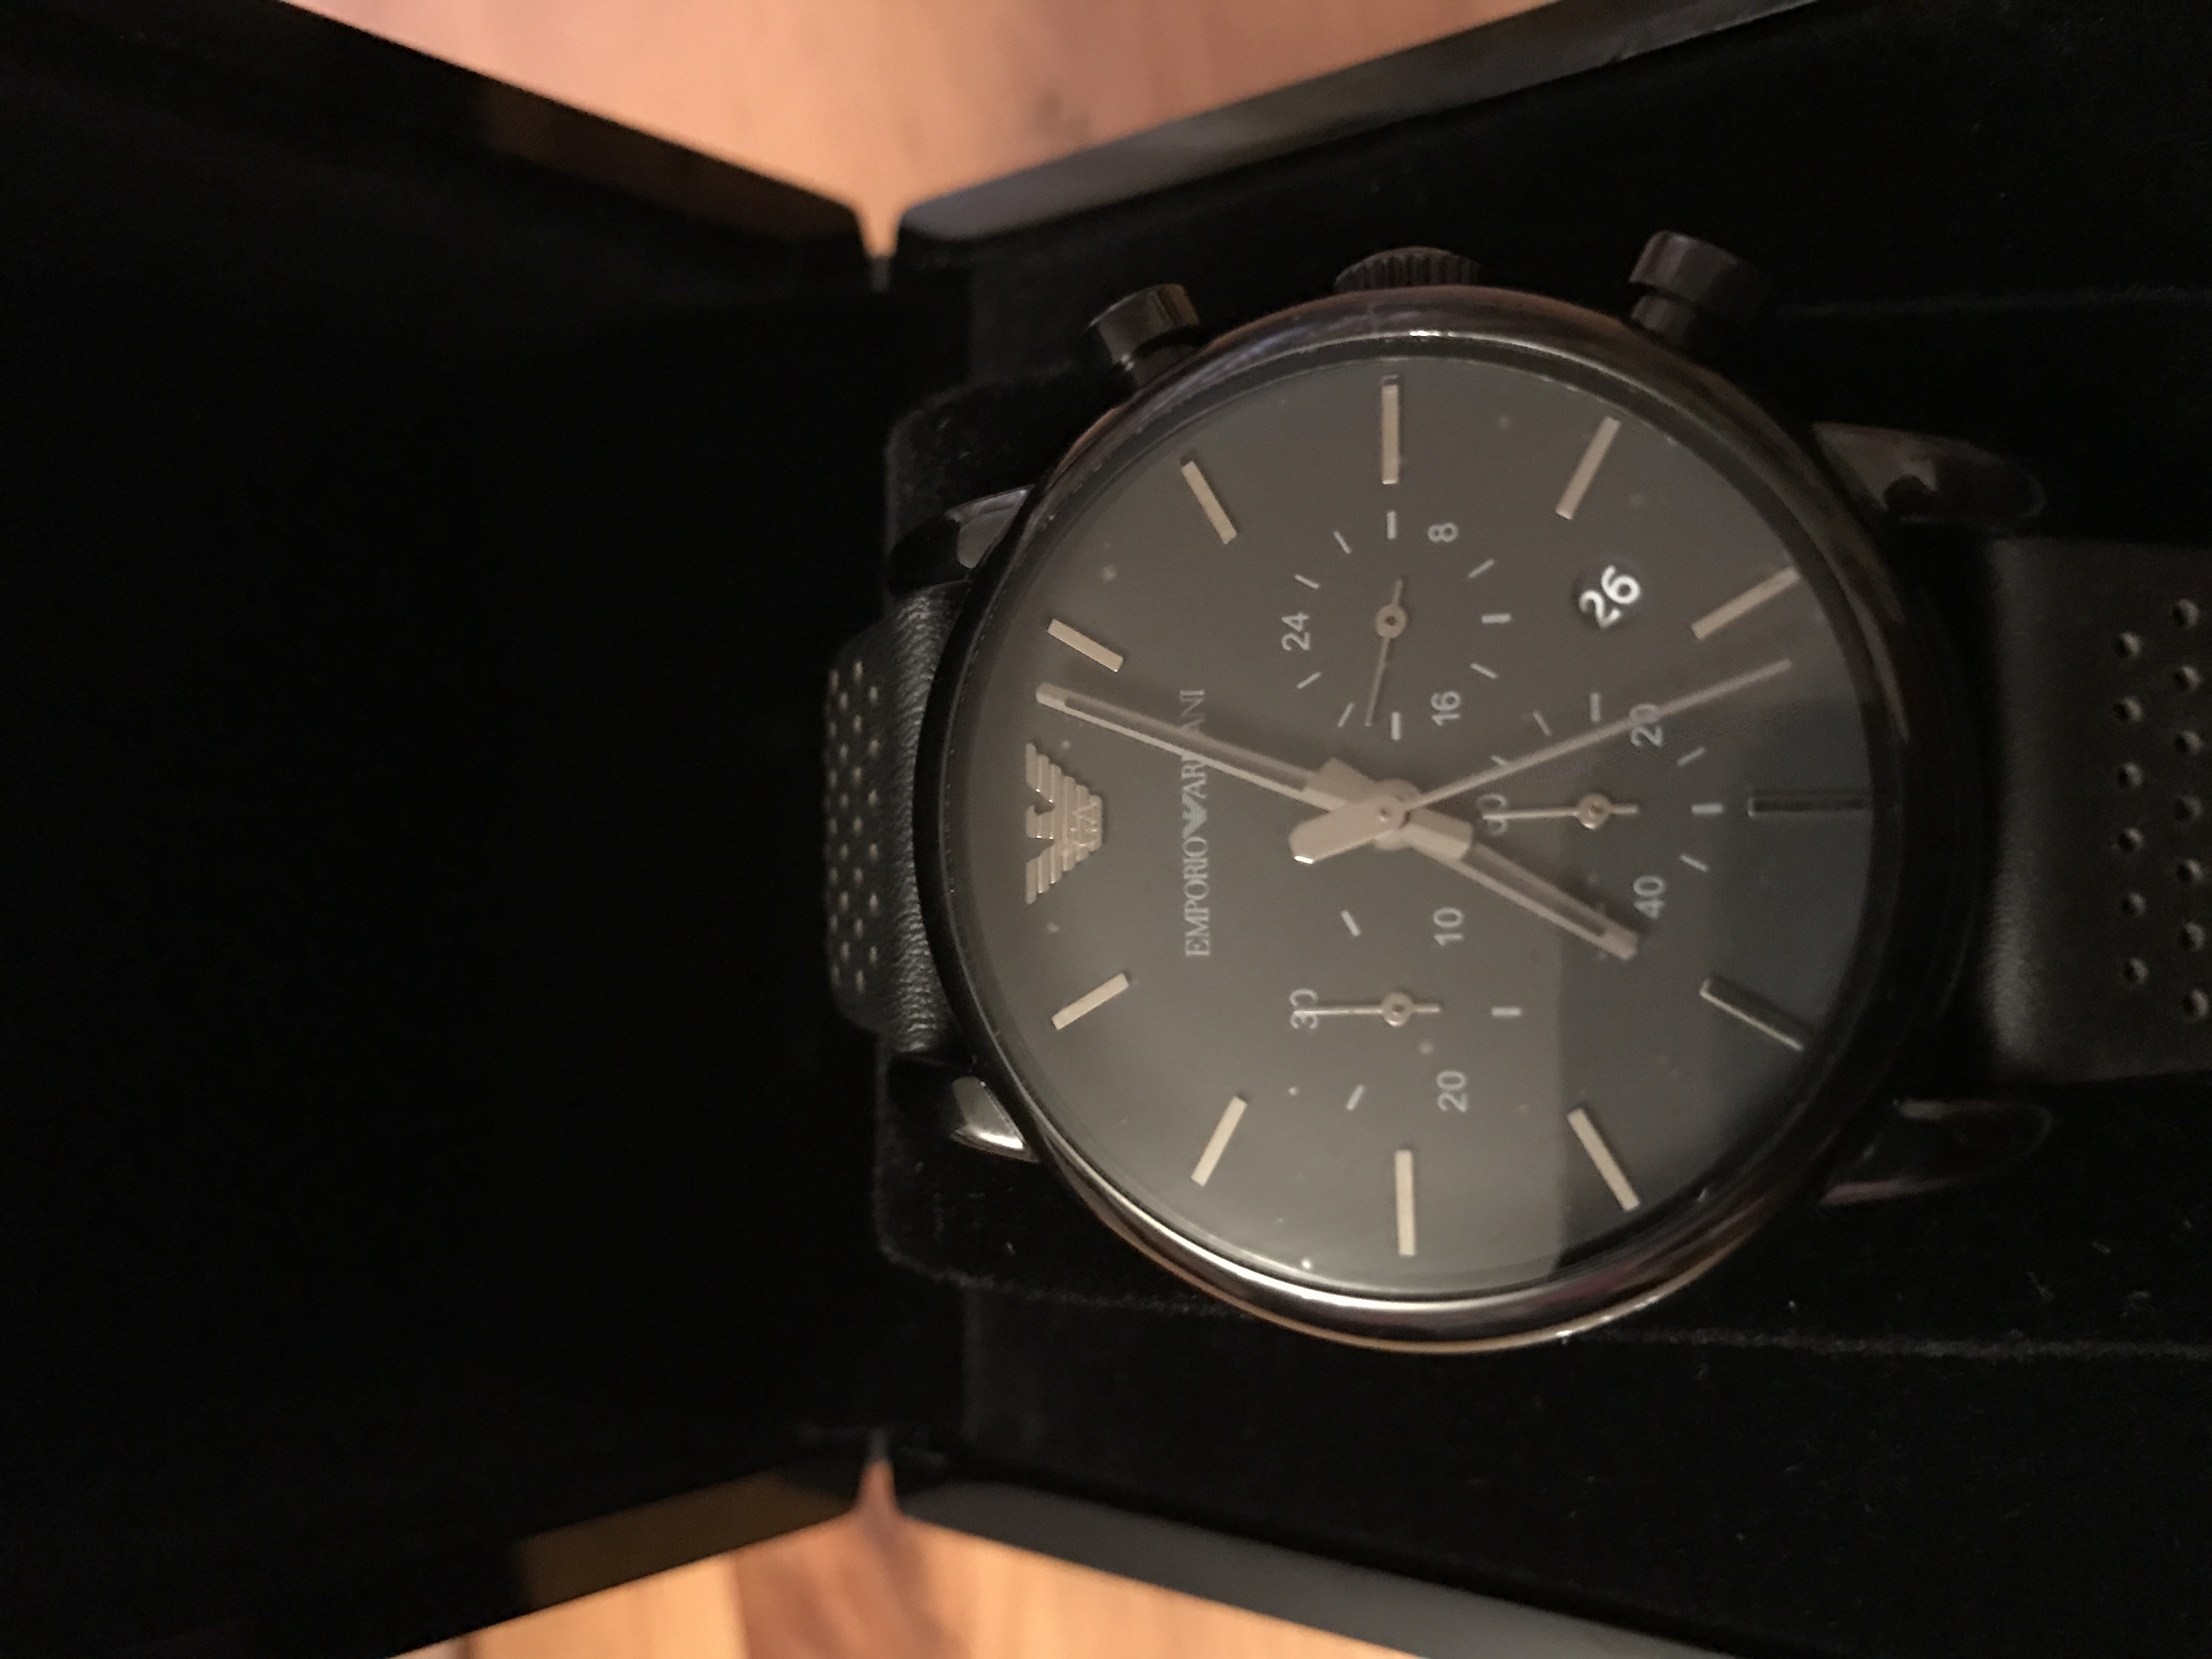 3d7e8e35157 The watch is aesthetically pleasing and very sleek. Perfect for everyday  wear with any outfit as its all black and smart. Only thing I would say  that might ...